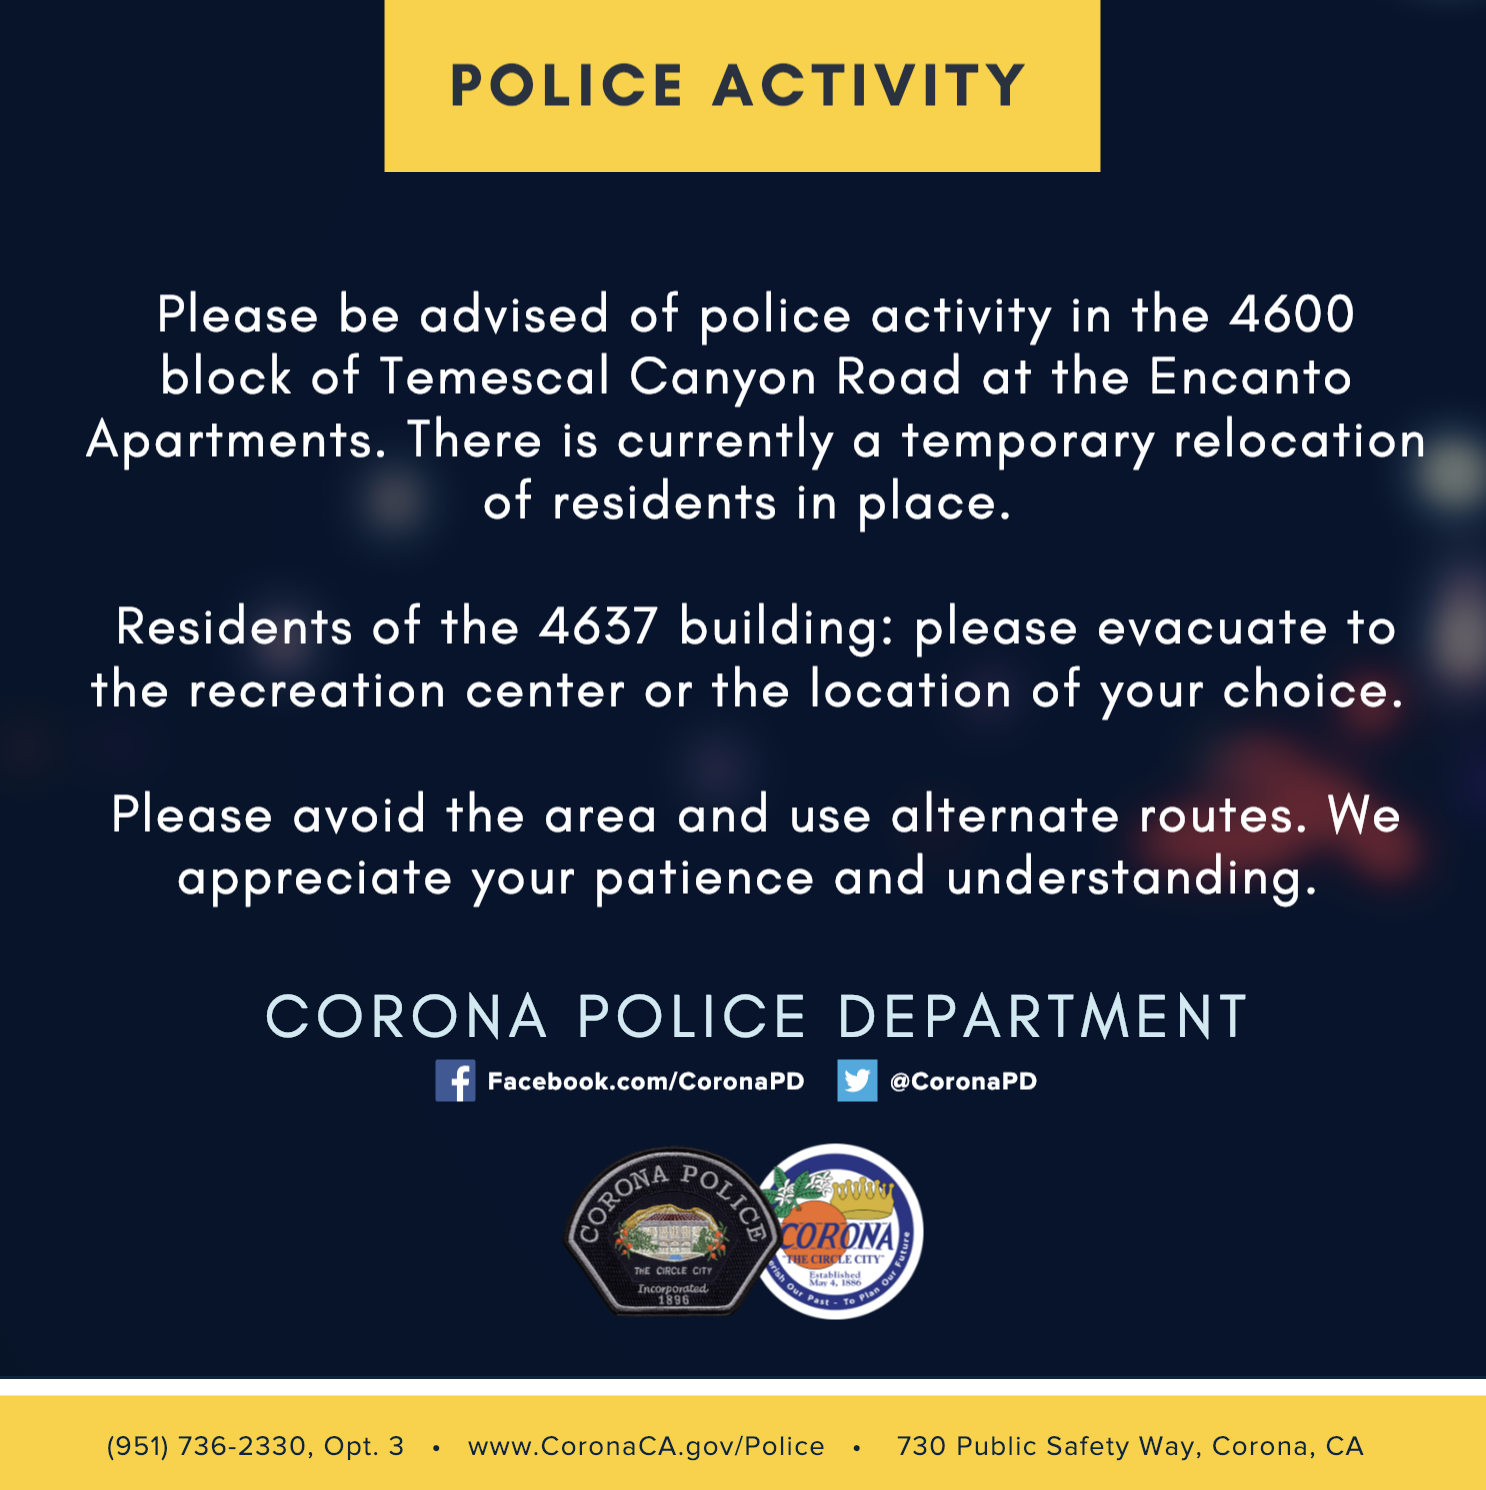 Police Activity